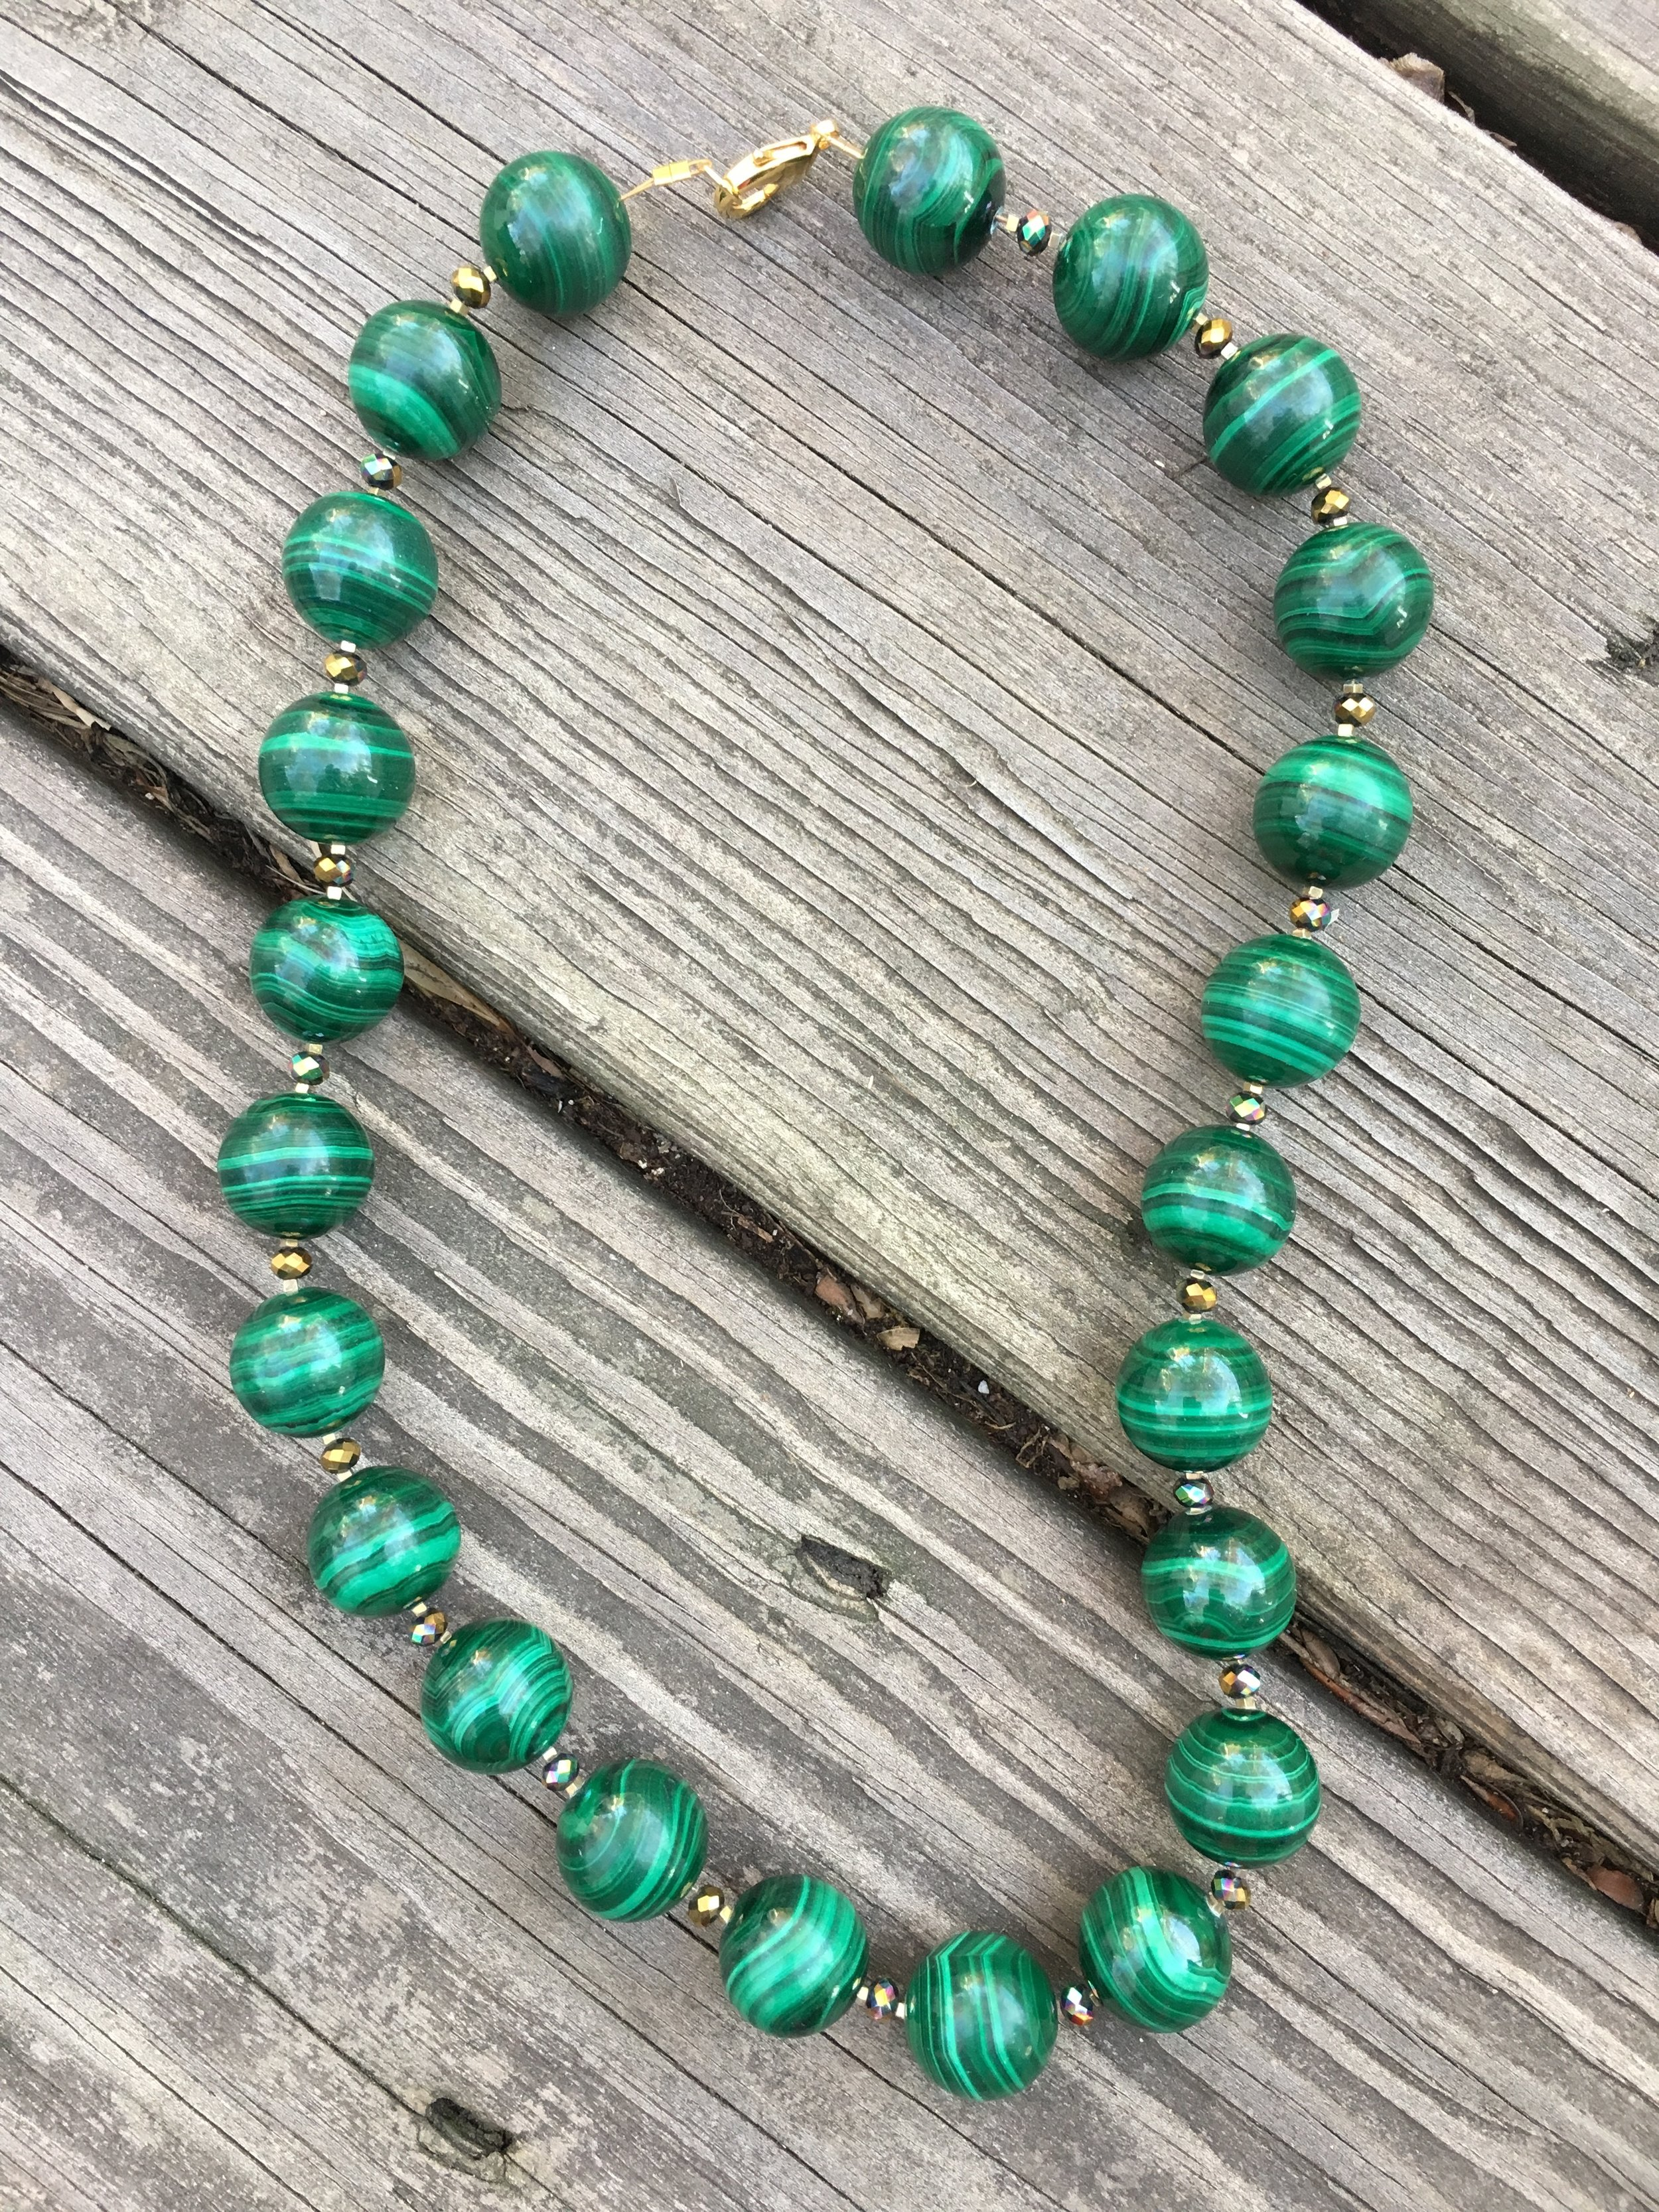 malachitE NECKLACE   Malachite necklace with glass beads and gold filled clasp.  $800